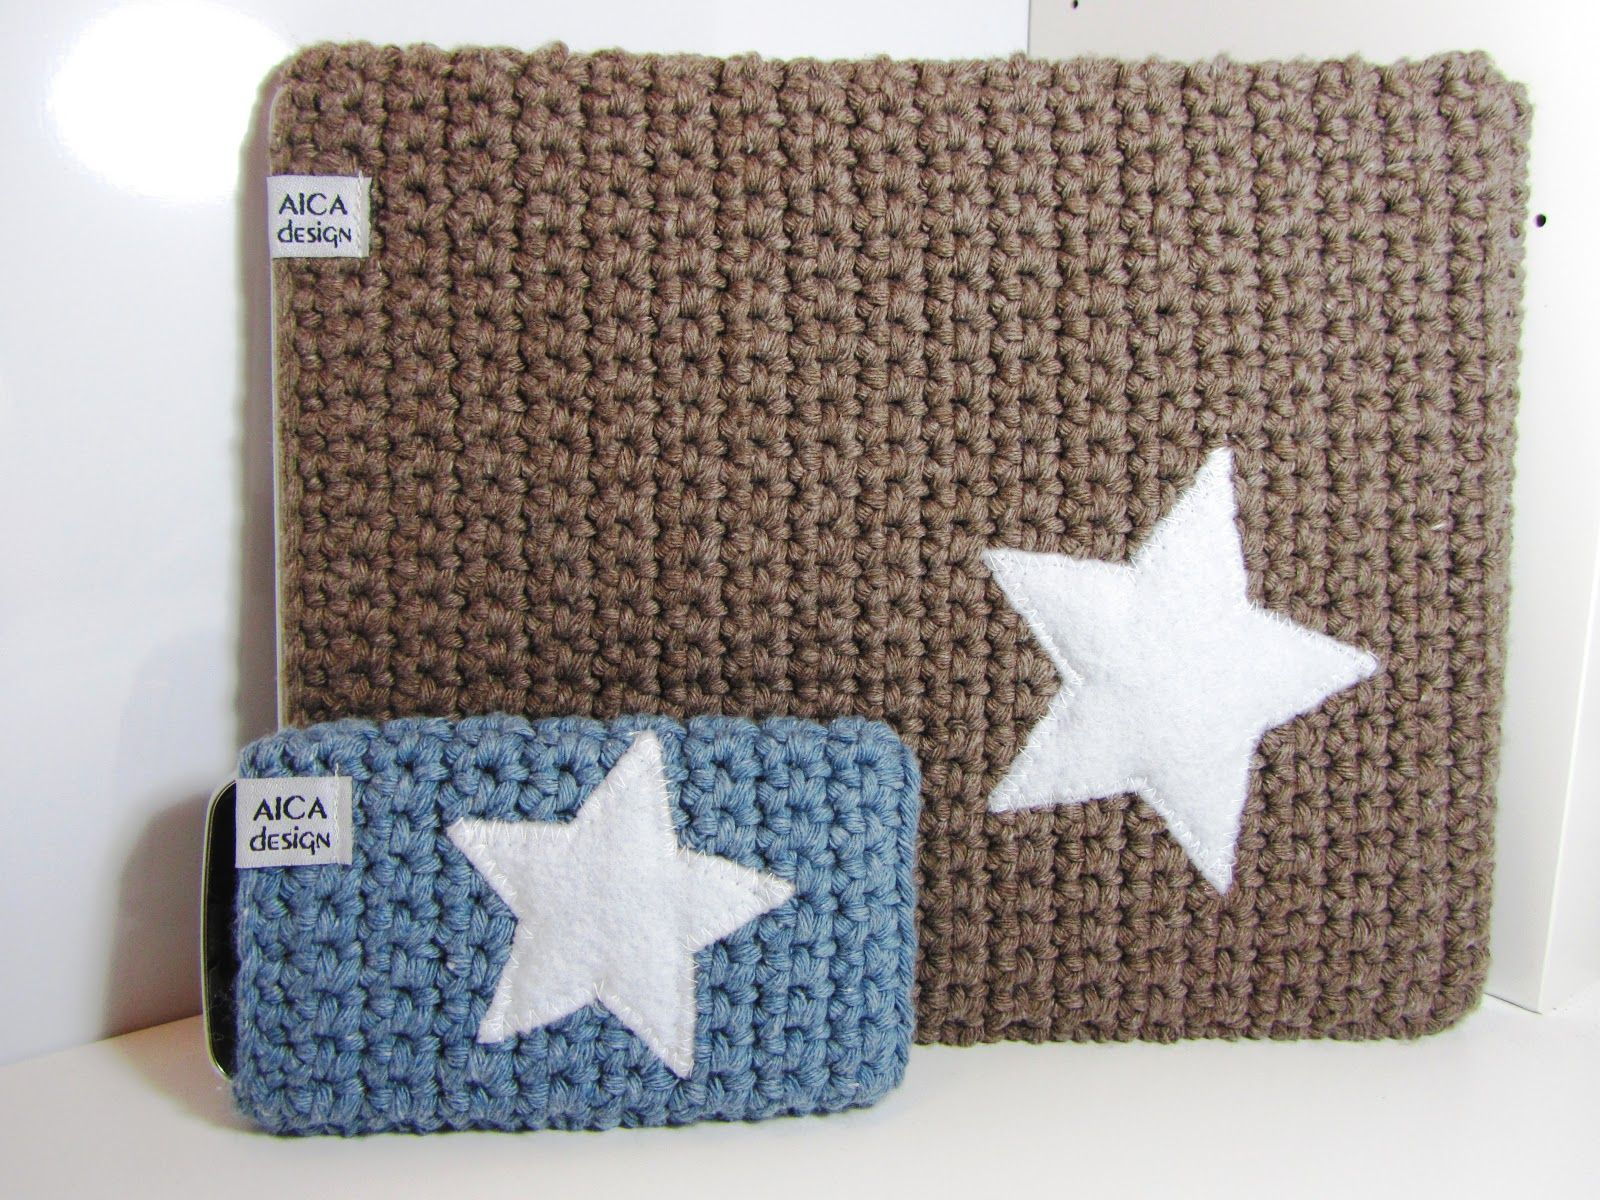 Crocheted iPad and iPhone sleeves | stars addict | Pinterest ...